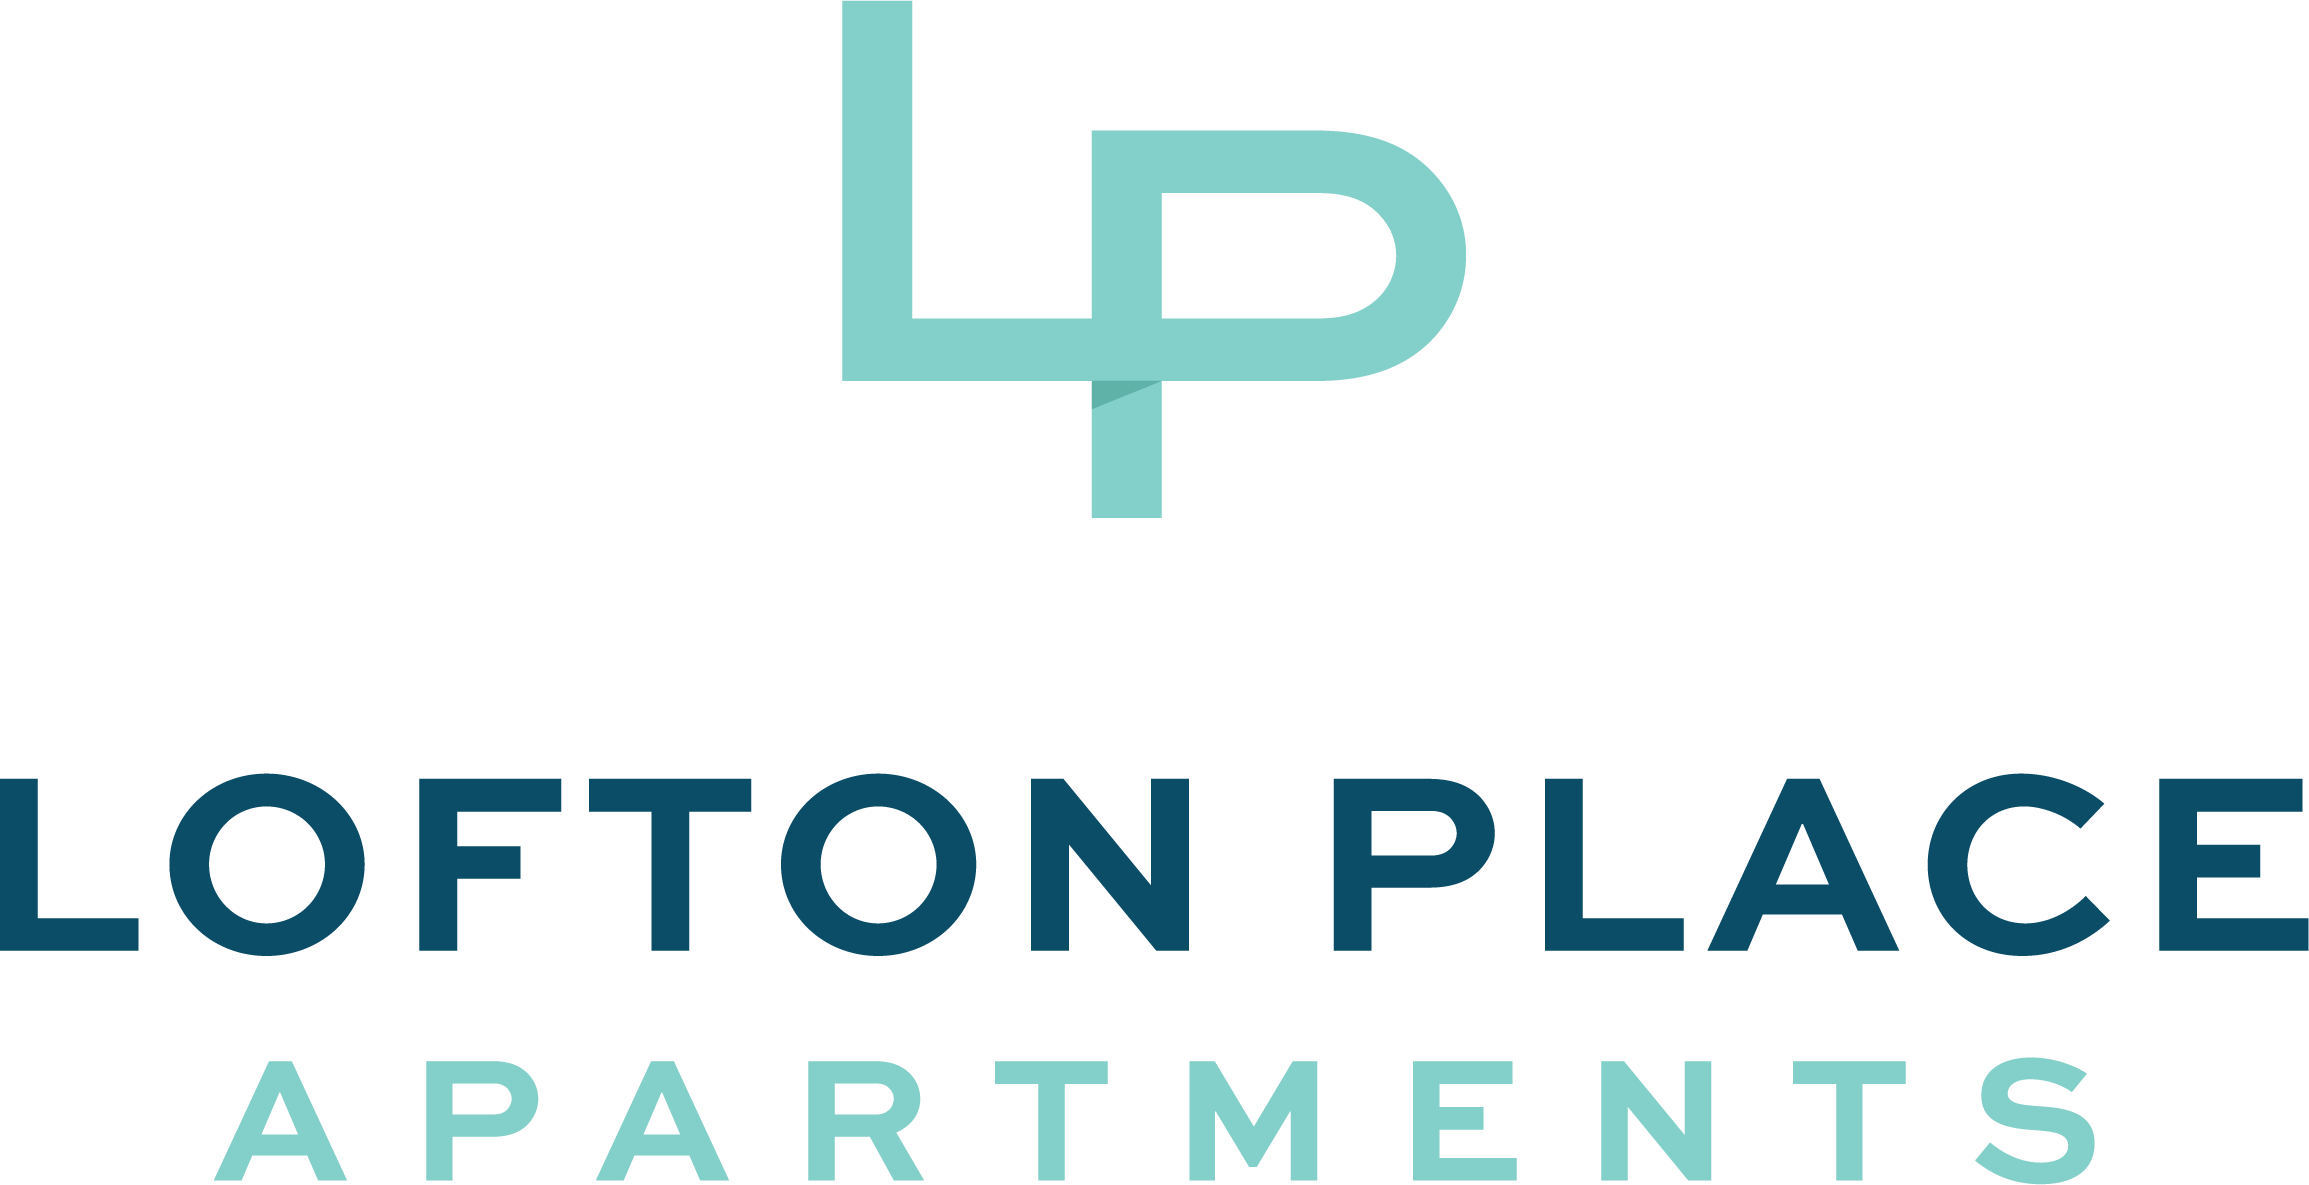 Lofton Place